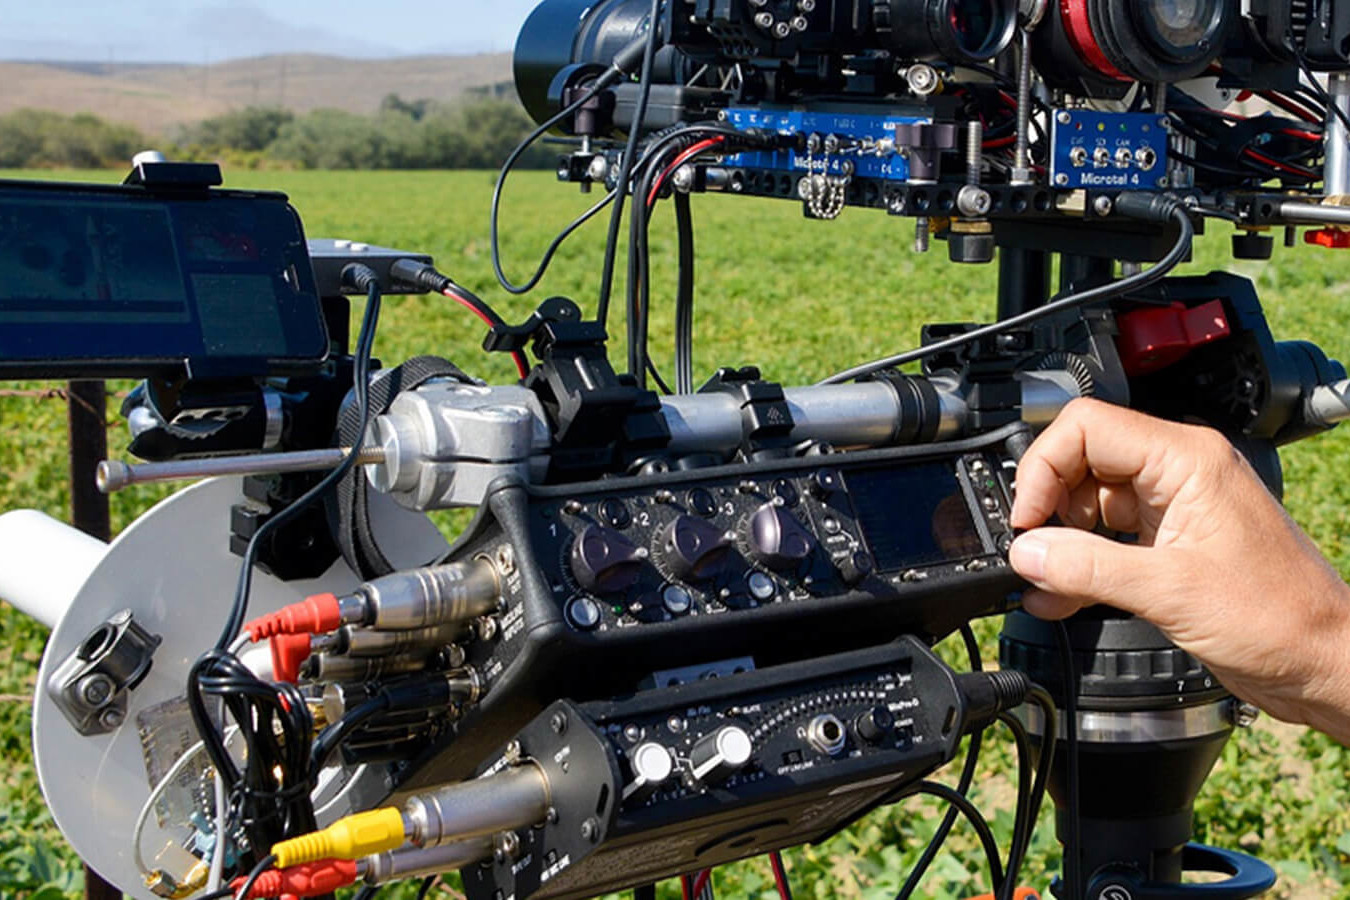 image of Dan Slater's sound and camera rig, featuring sound devices recorders